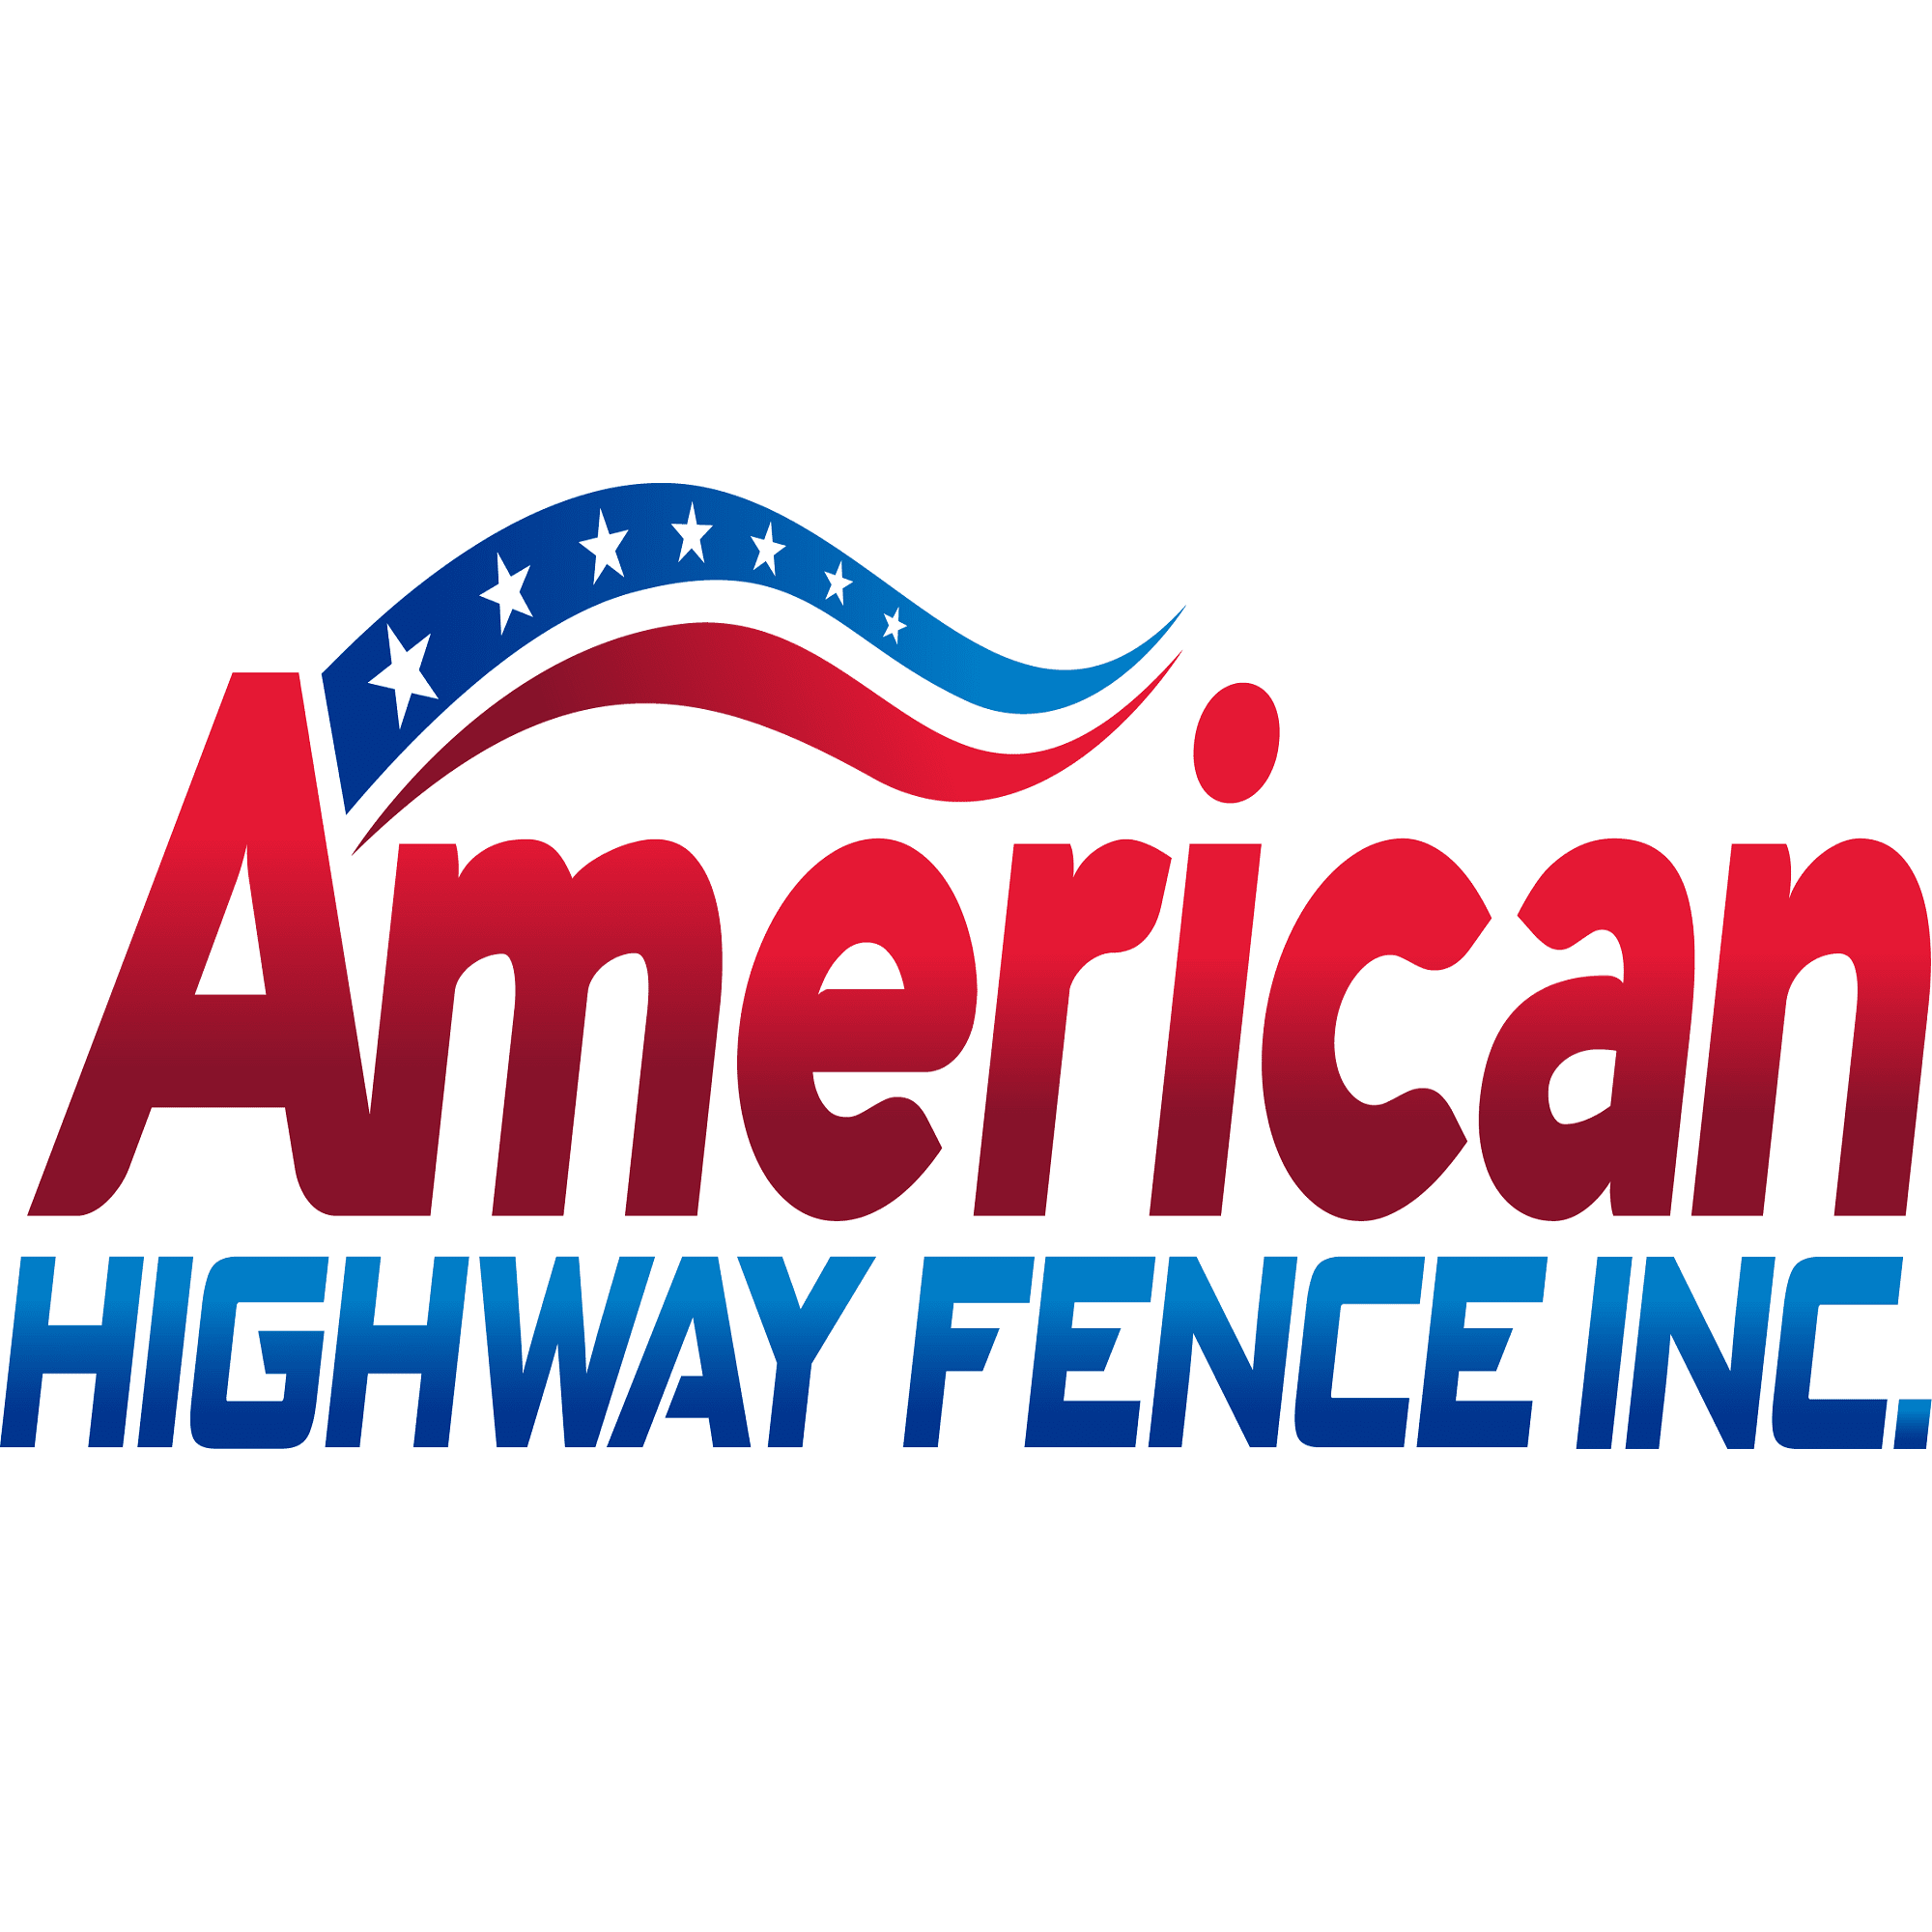 American Highway Fence Inc - Mount Sterling, KY - Fence Installation & Repair